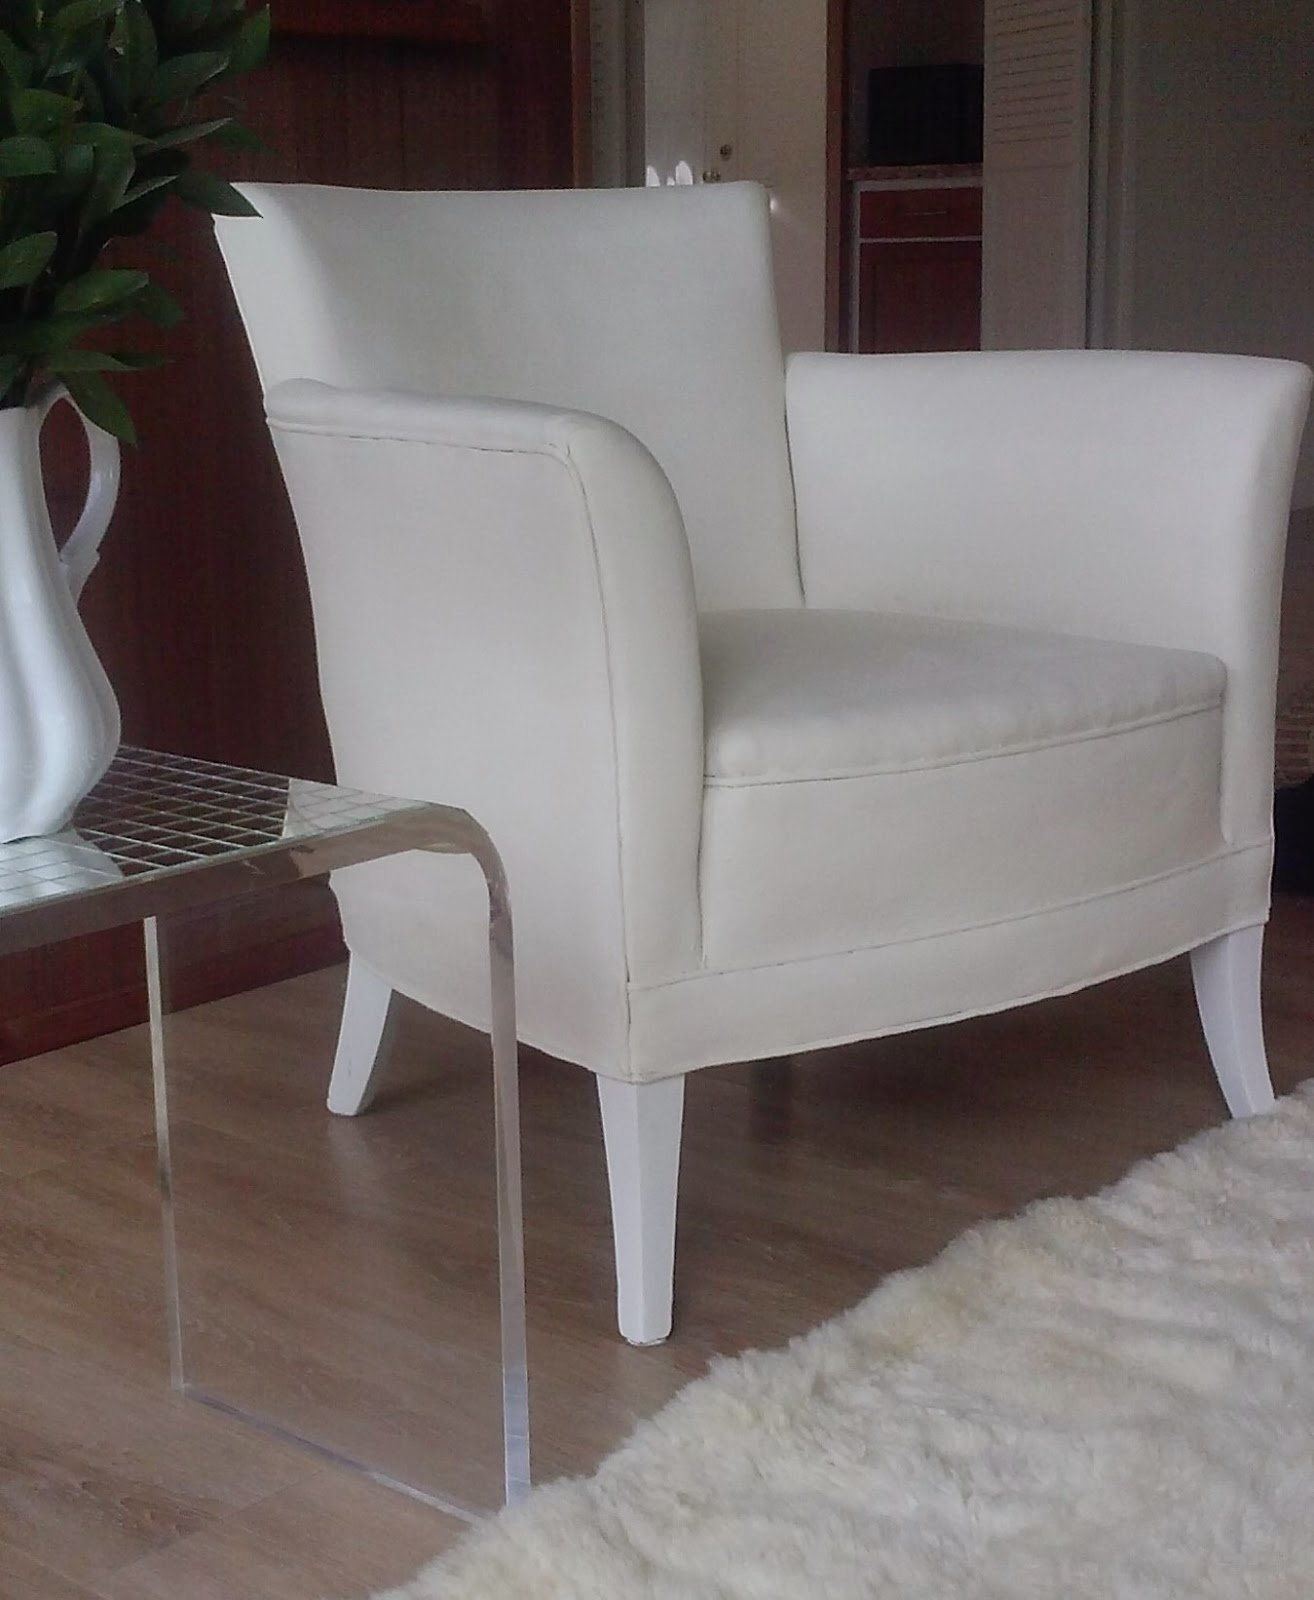 Reloved Rubbish: Chalk Paint on Fabric Chairs